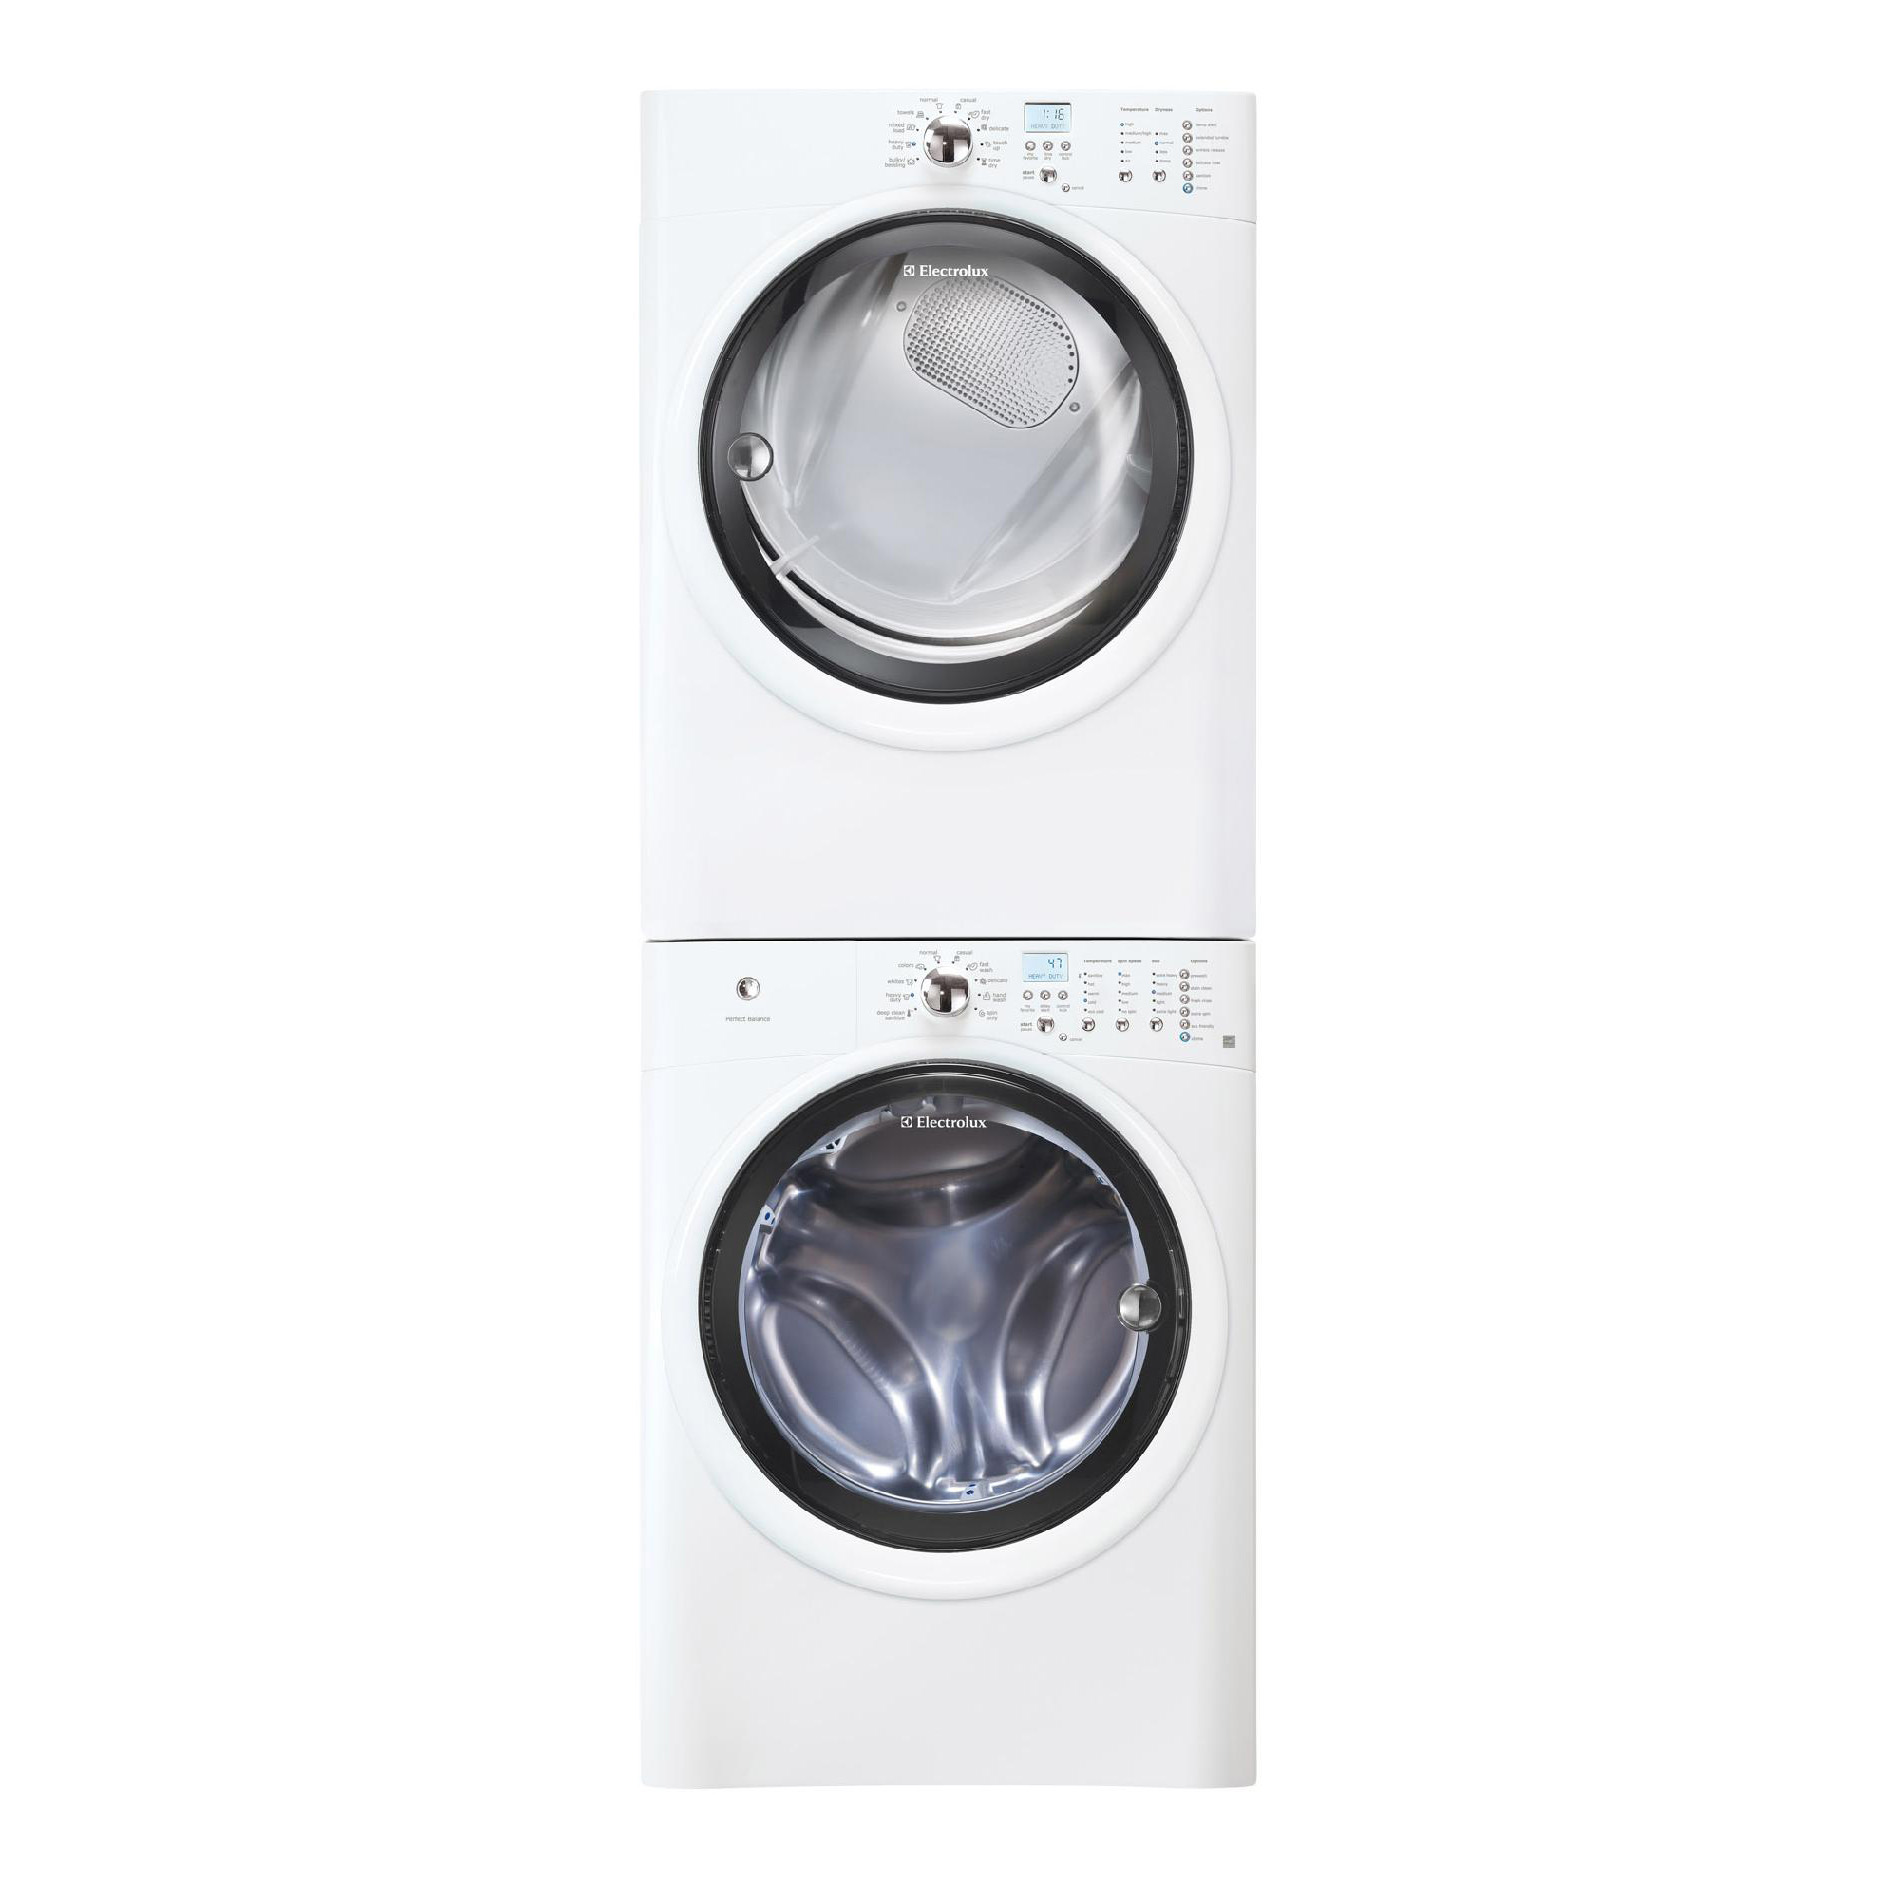 Electrolux EIFLW50LIW 4.2 cu. ft. Front-Load Washer w/ Reversible Door - Island White